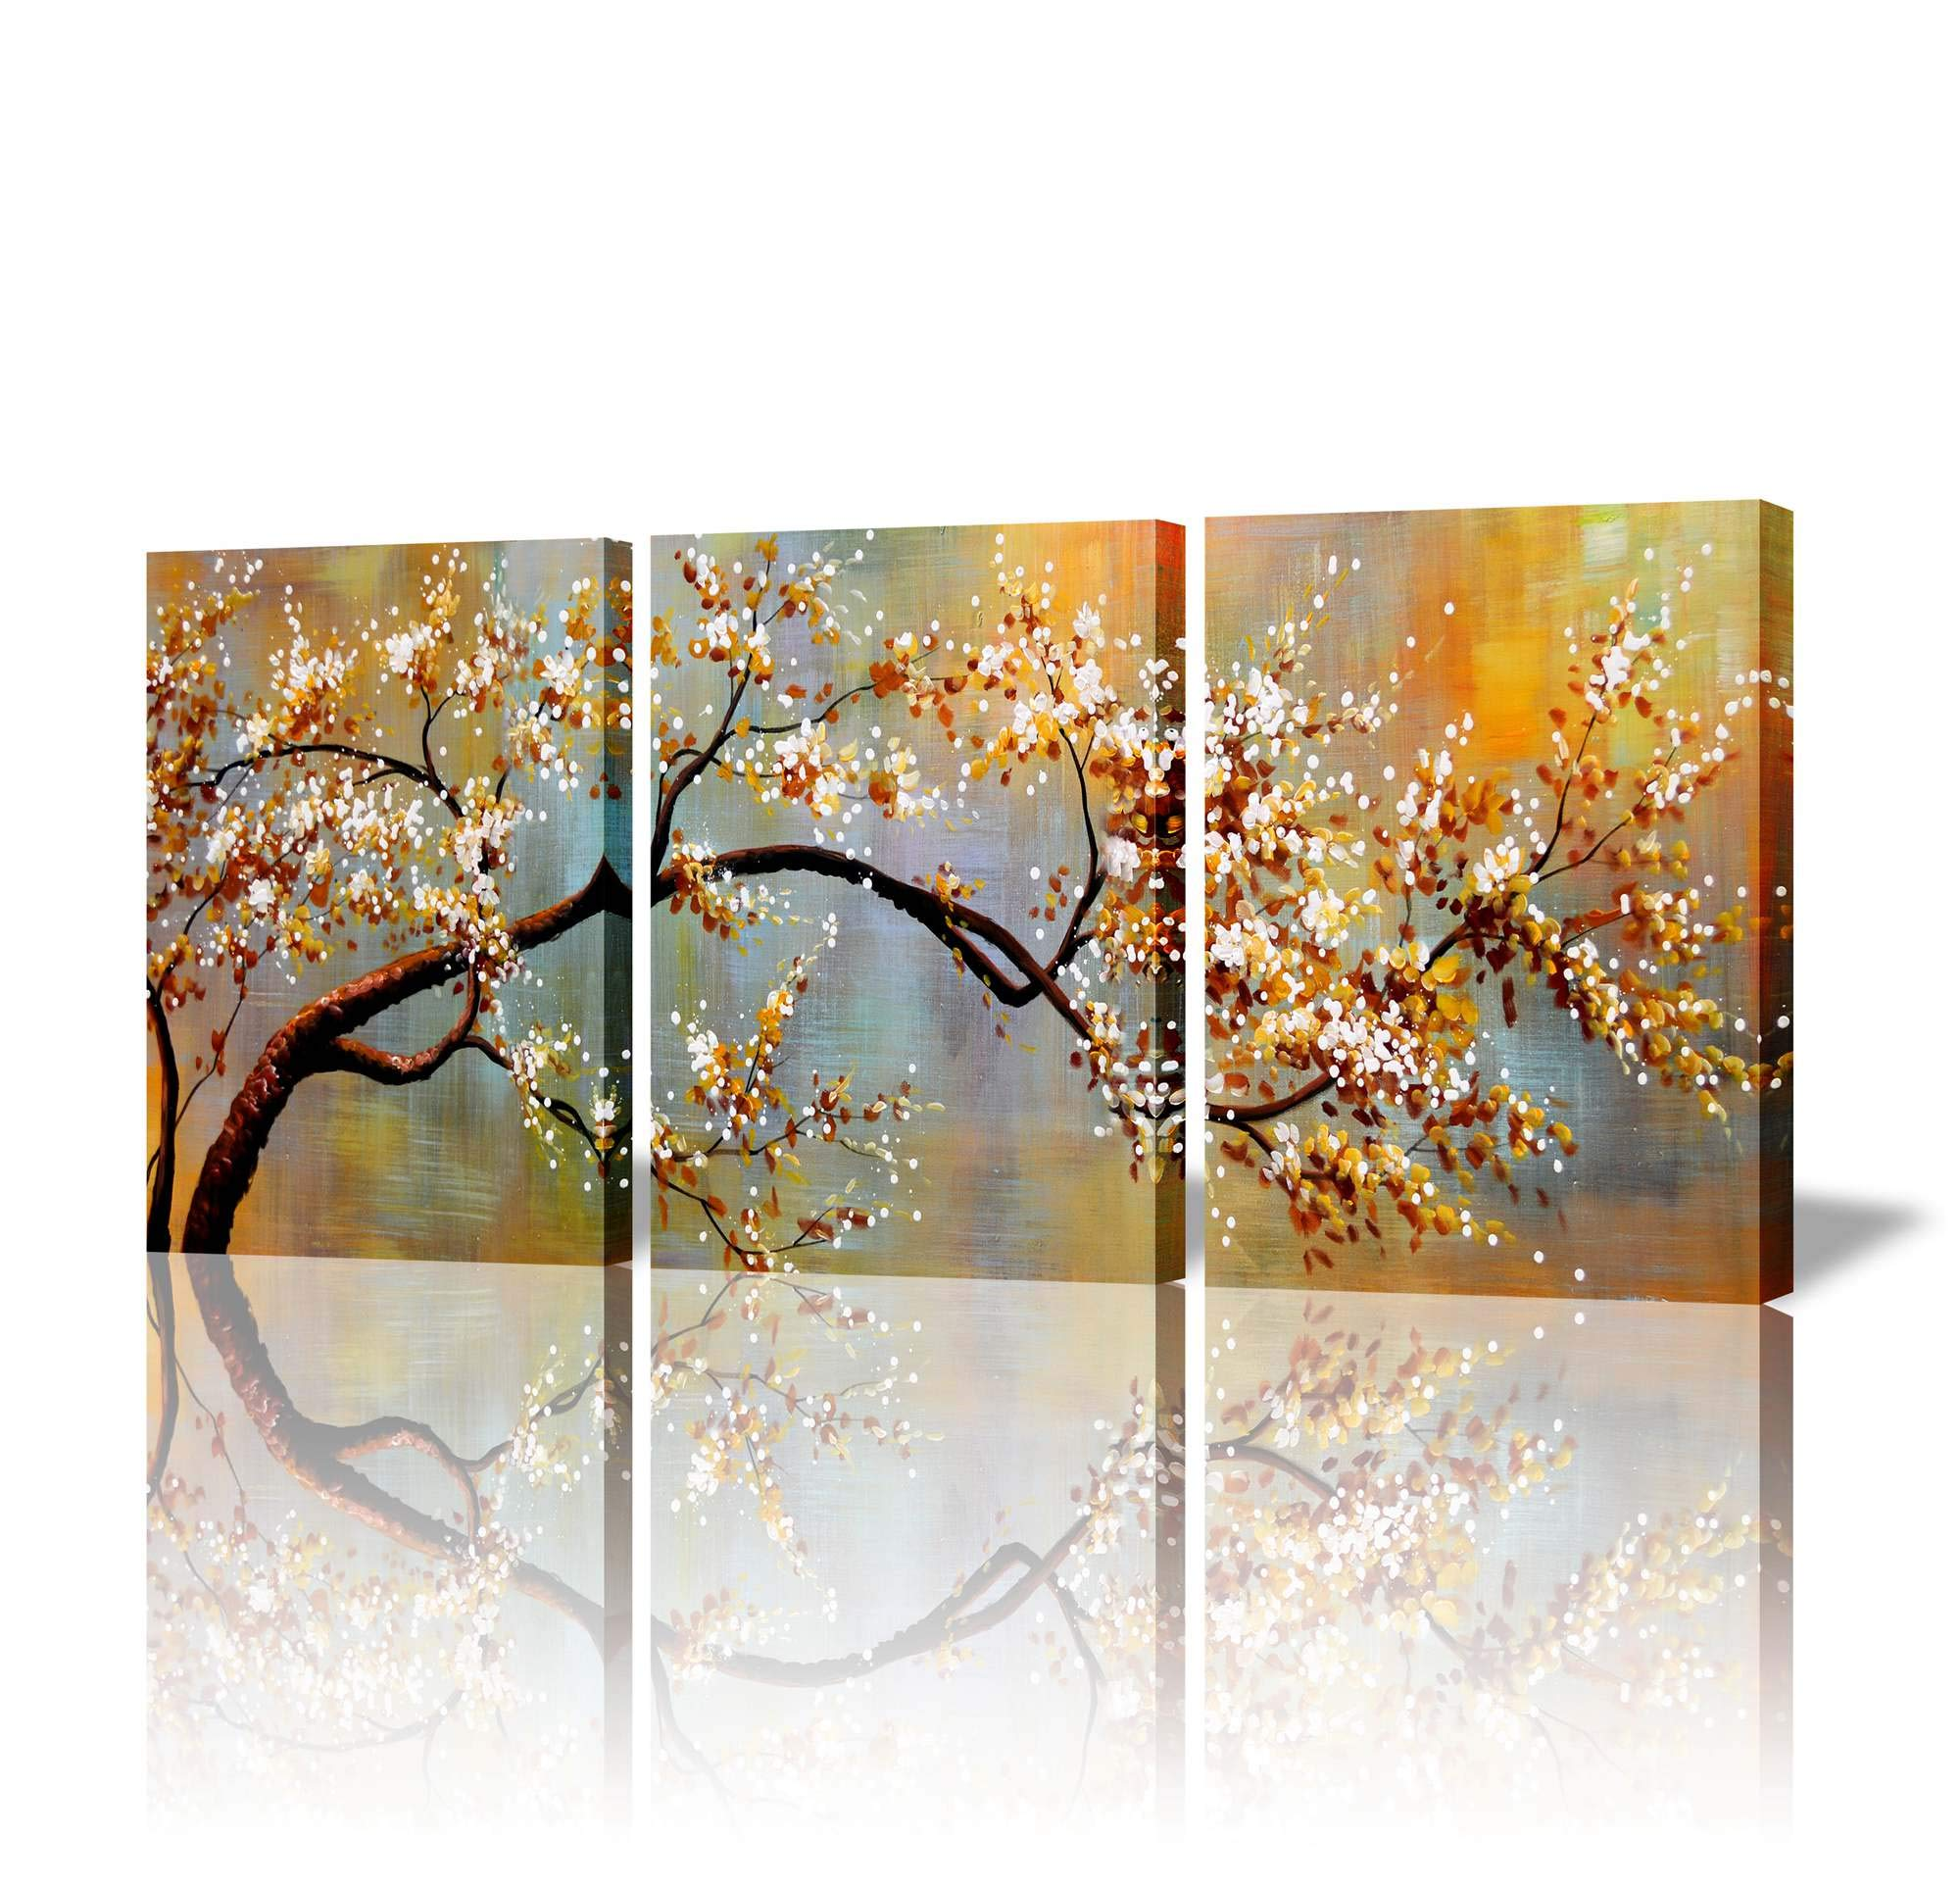 ARTLAND Canvas Wall Art Pictures Decor Ready to Hang Floral Artwork for Walls Home Decorations for Living Room 'Exquisite Yellow Plum' 3 Piece Wall Artwork Framed